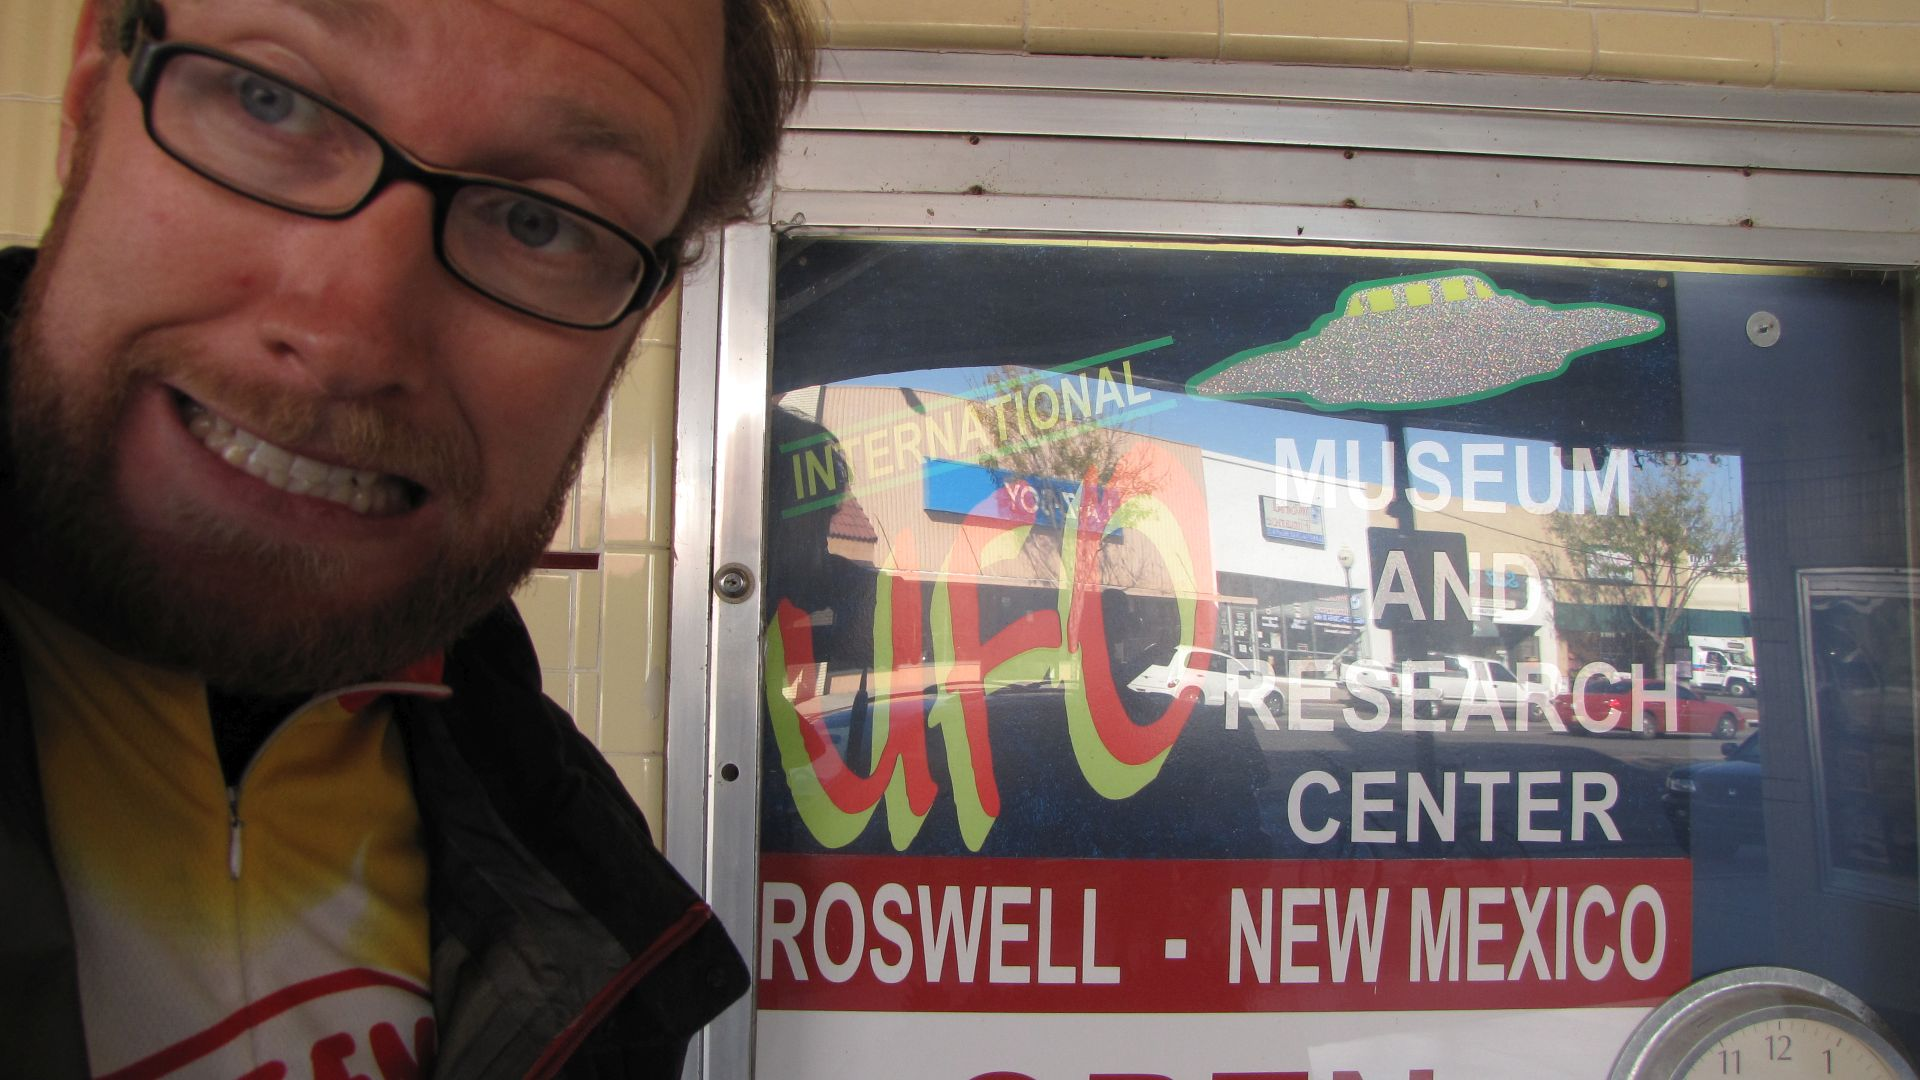 Roswell, NM, USA - They are out there ...